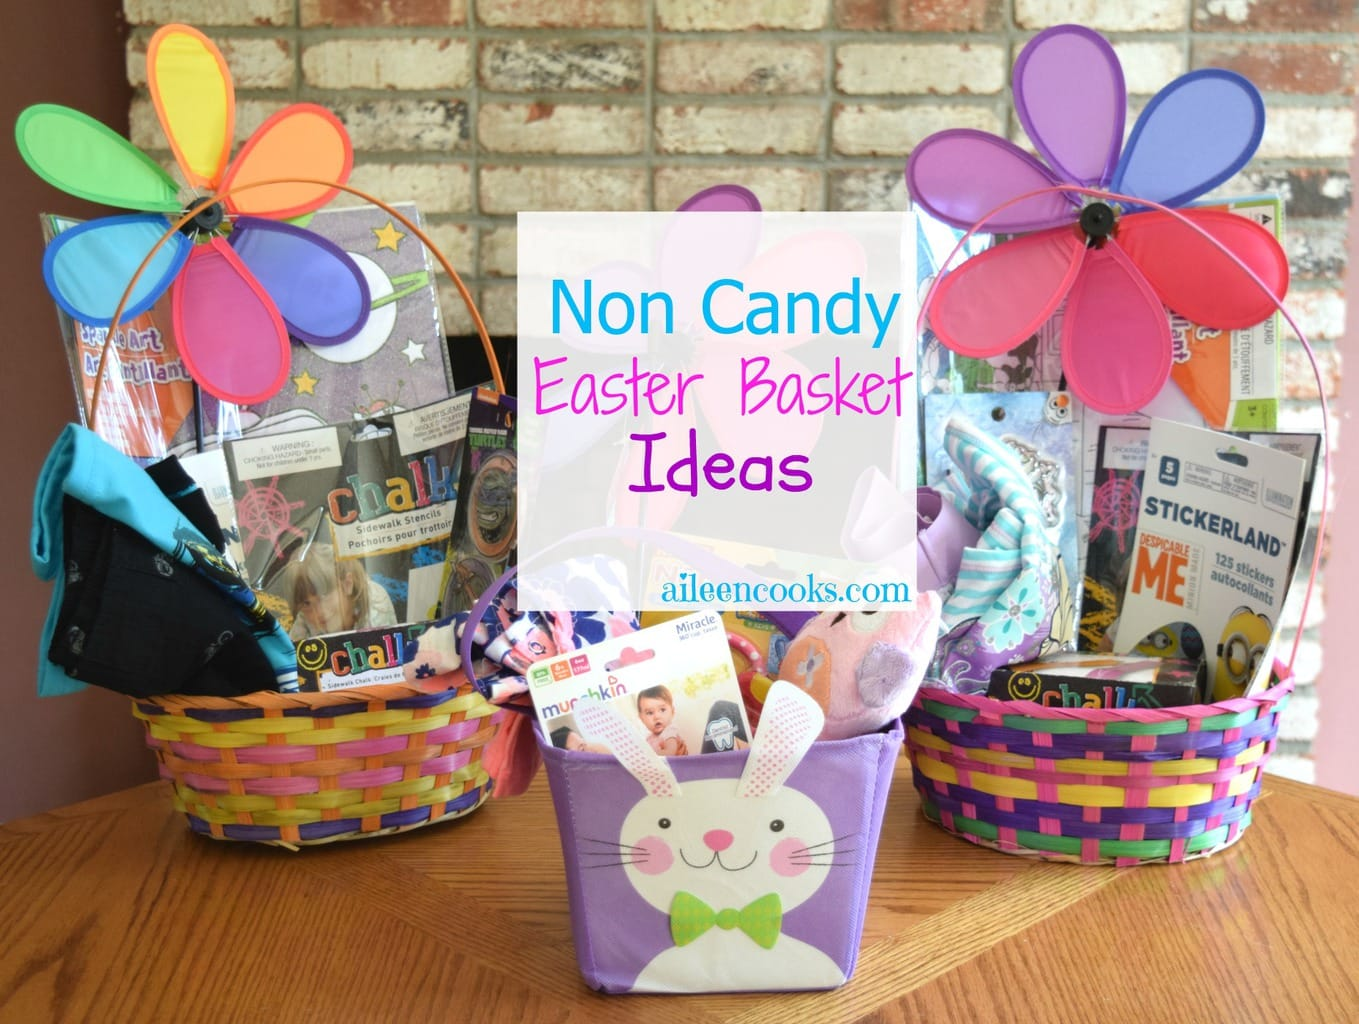 Non candy easter basket ideas aileen cooks non candy easter basket ideas for baby preschooler and toddler age groups most negle Gallery